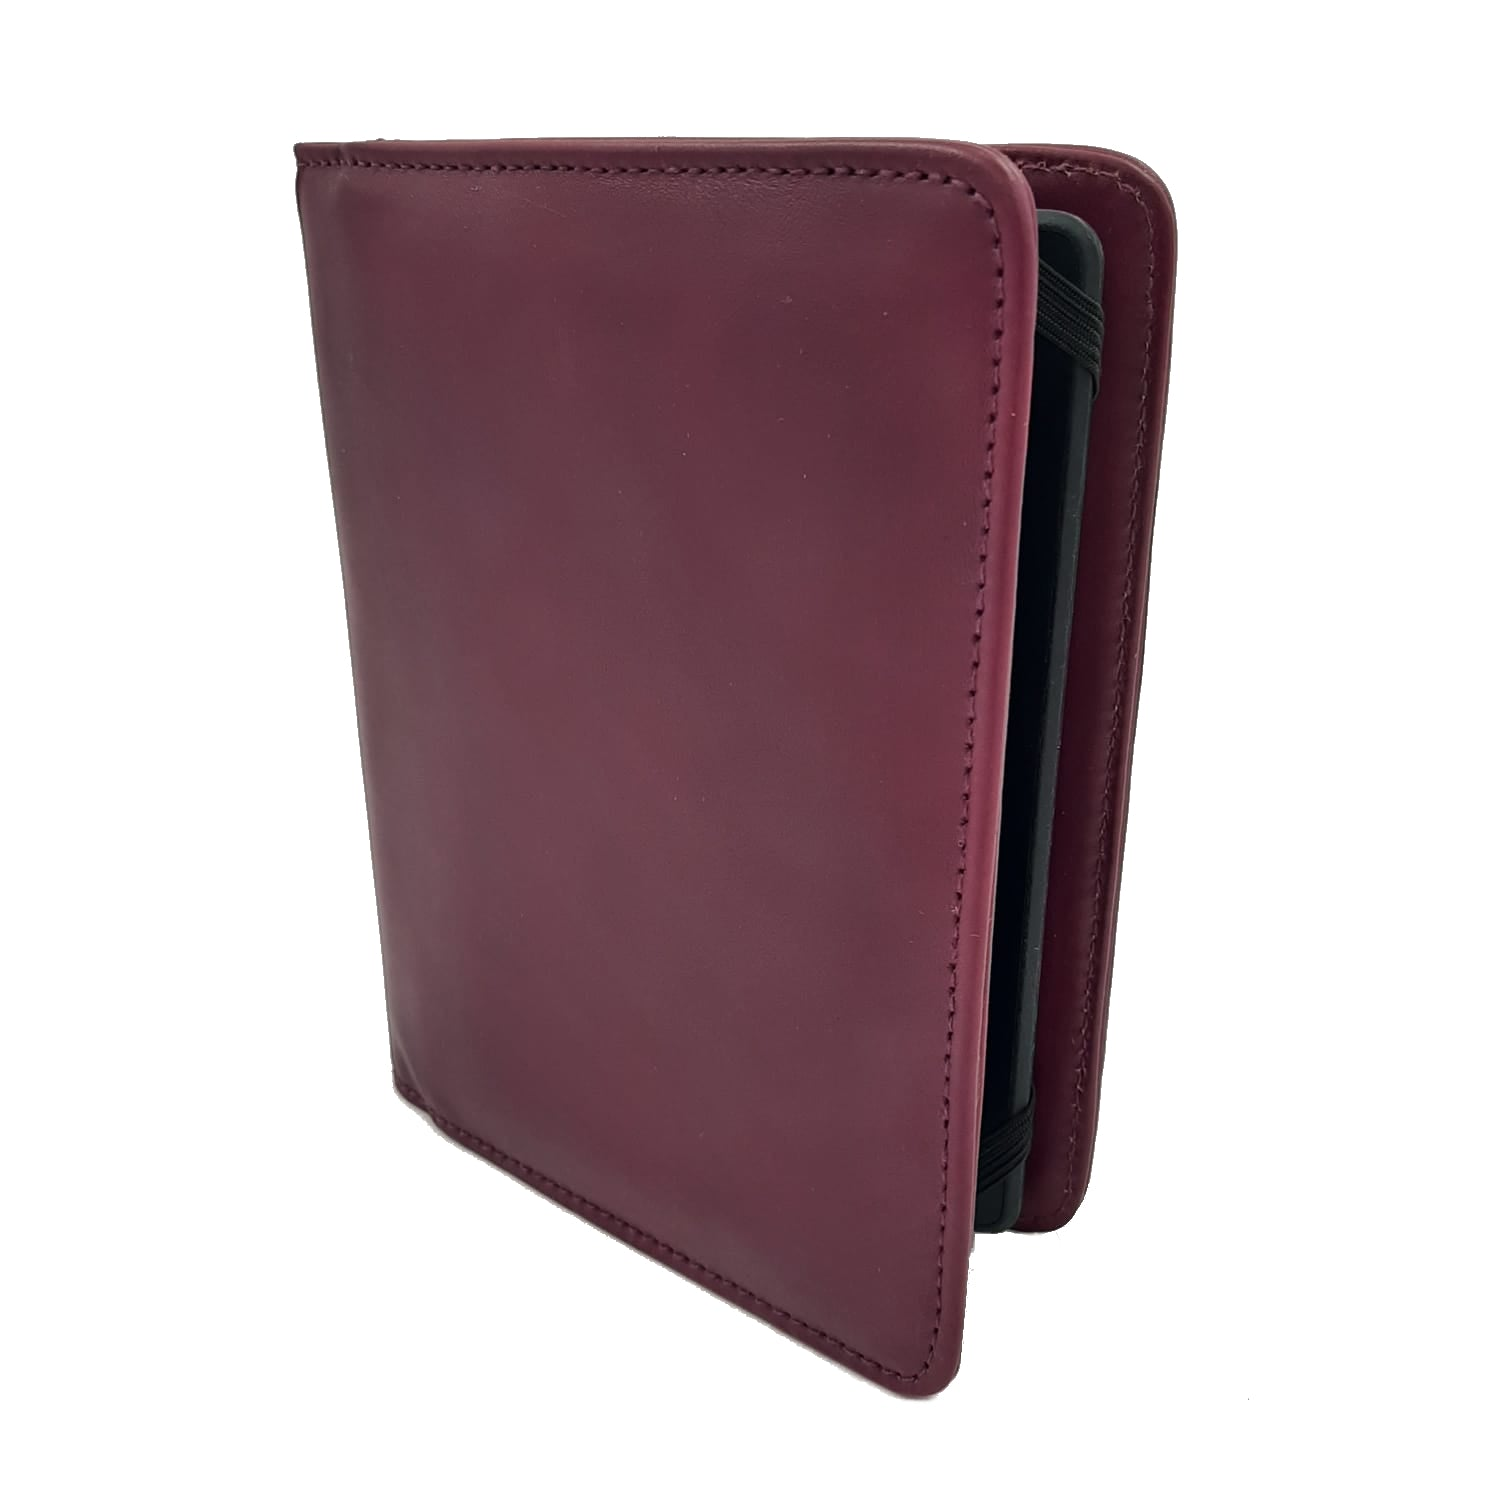 Paperwhite Kindle Cover - Plum